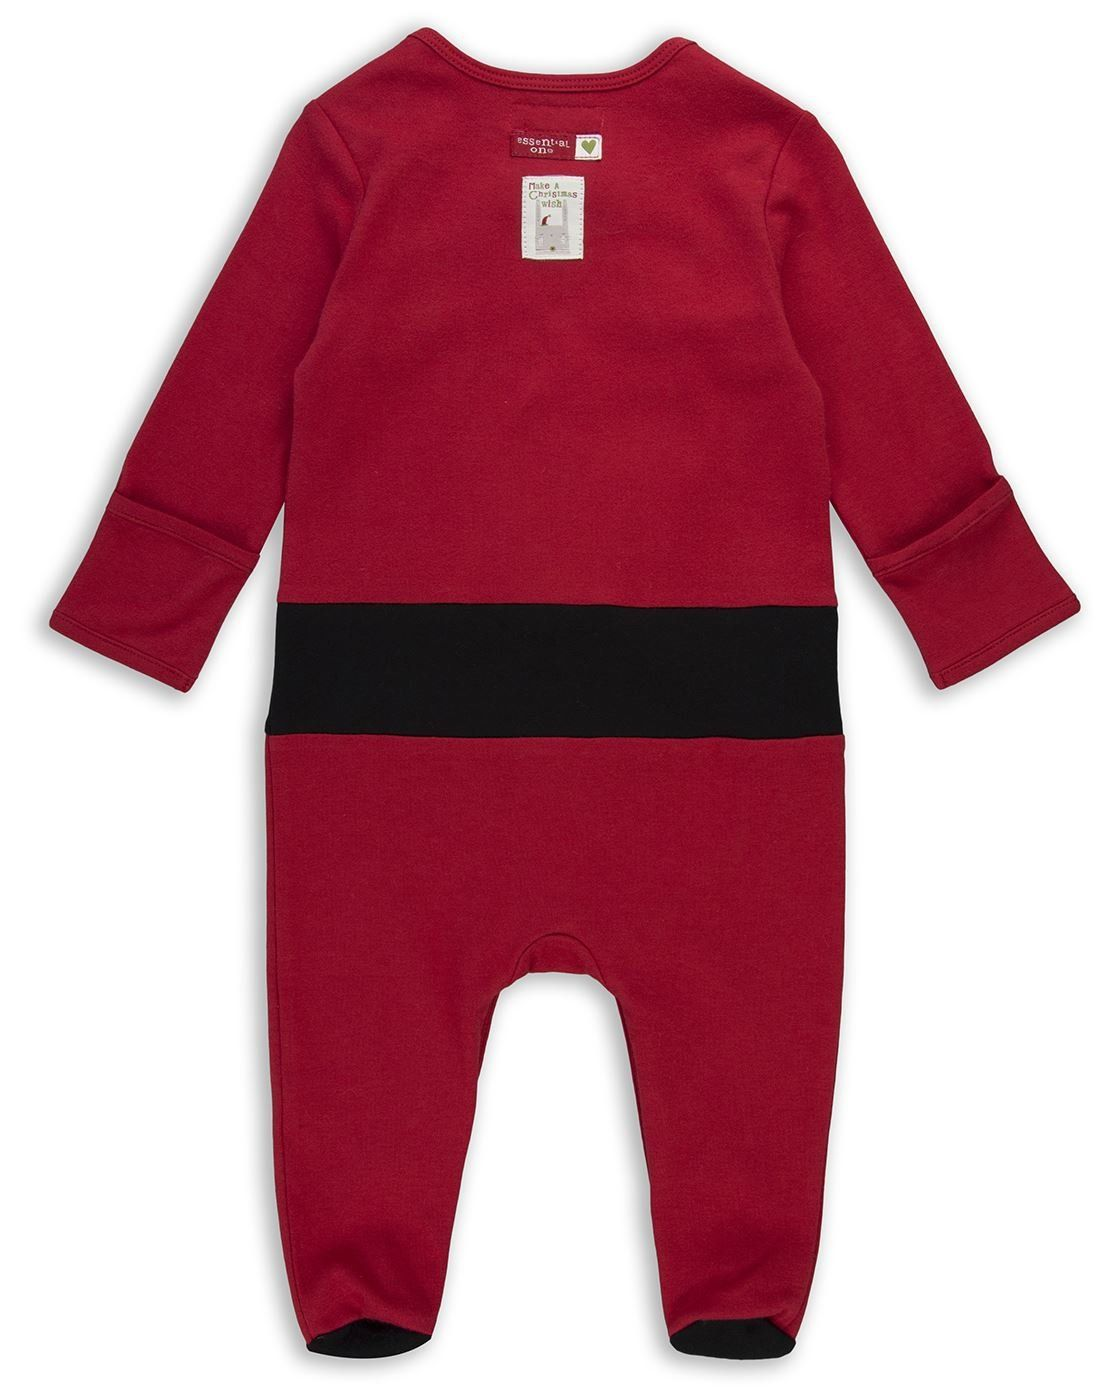 Baby Boys' Clothing (0-24 Months) Baby Boys 3-6 Months